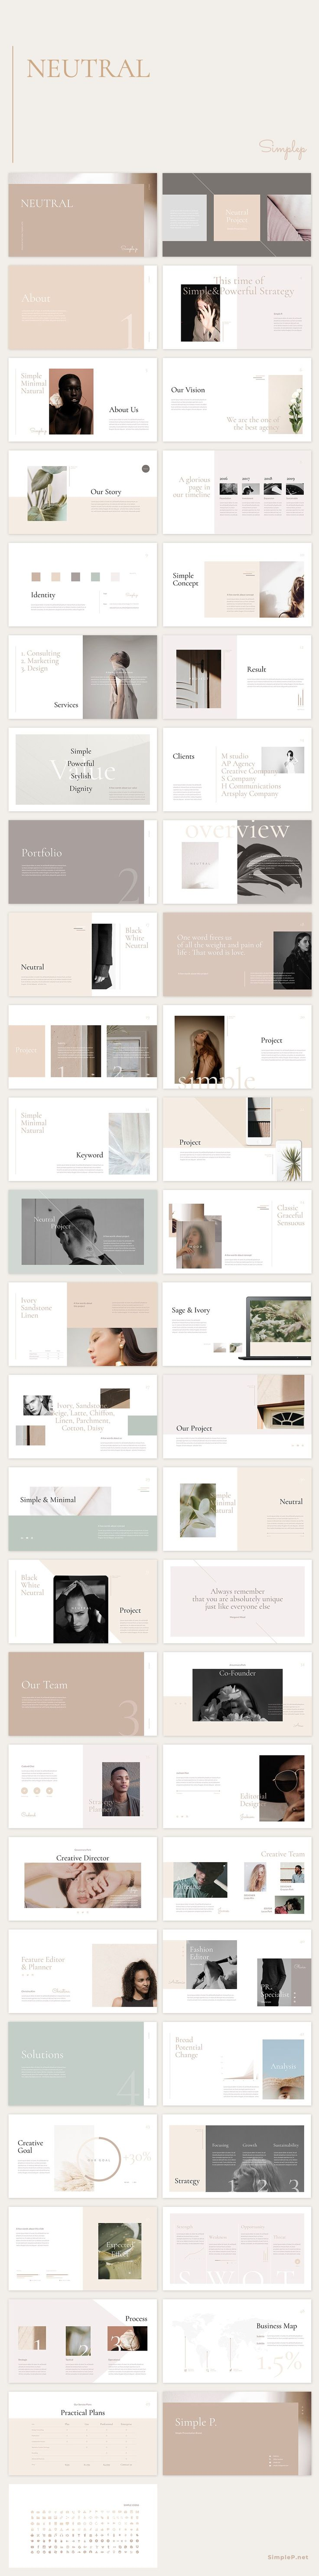 ✨This presentation 'Neutral' contains creative content slides with beaut...